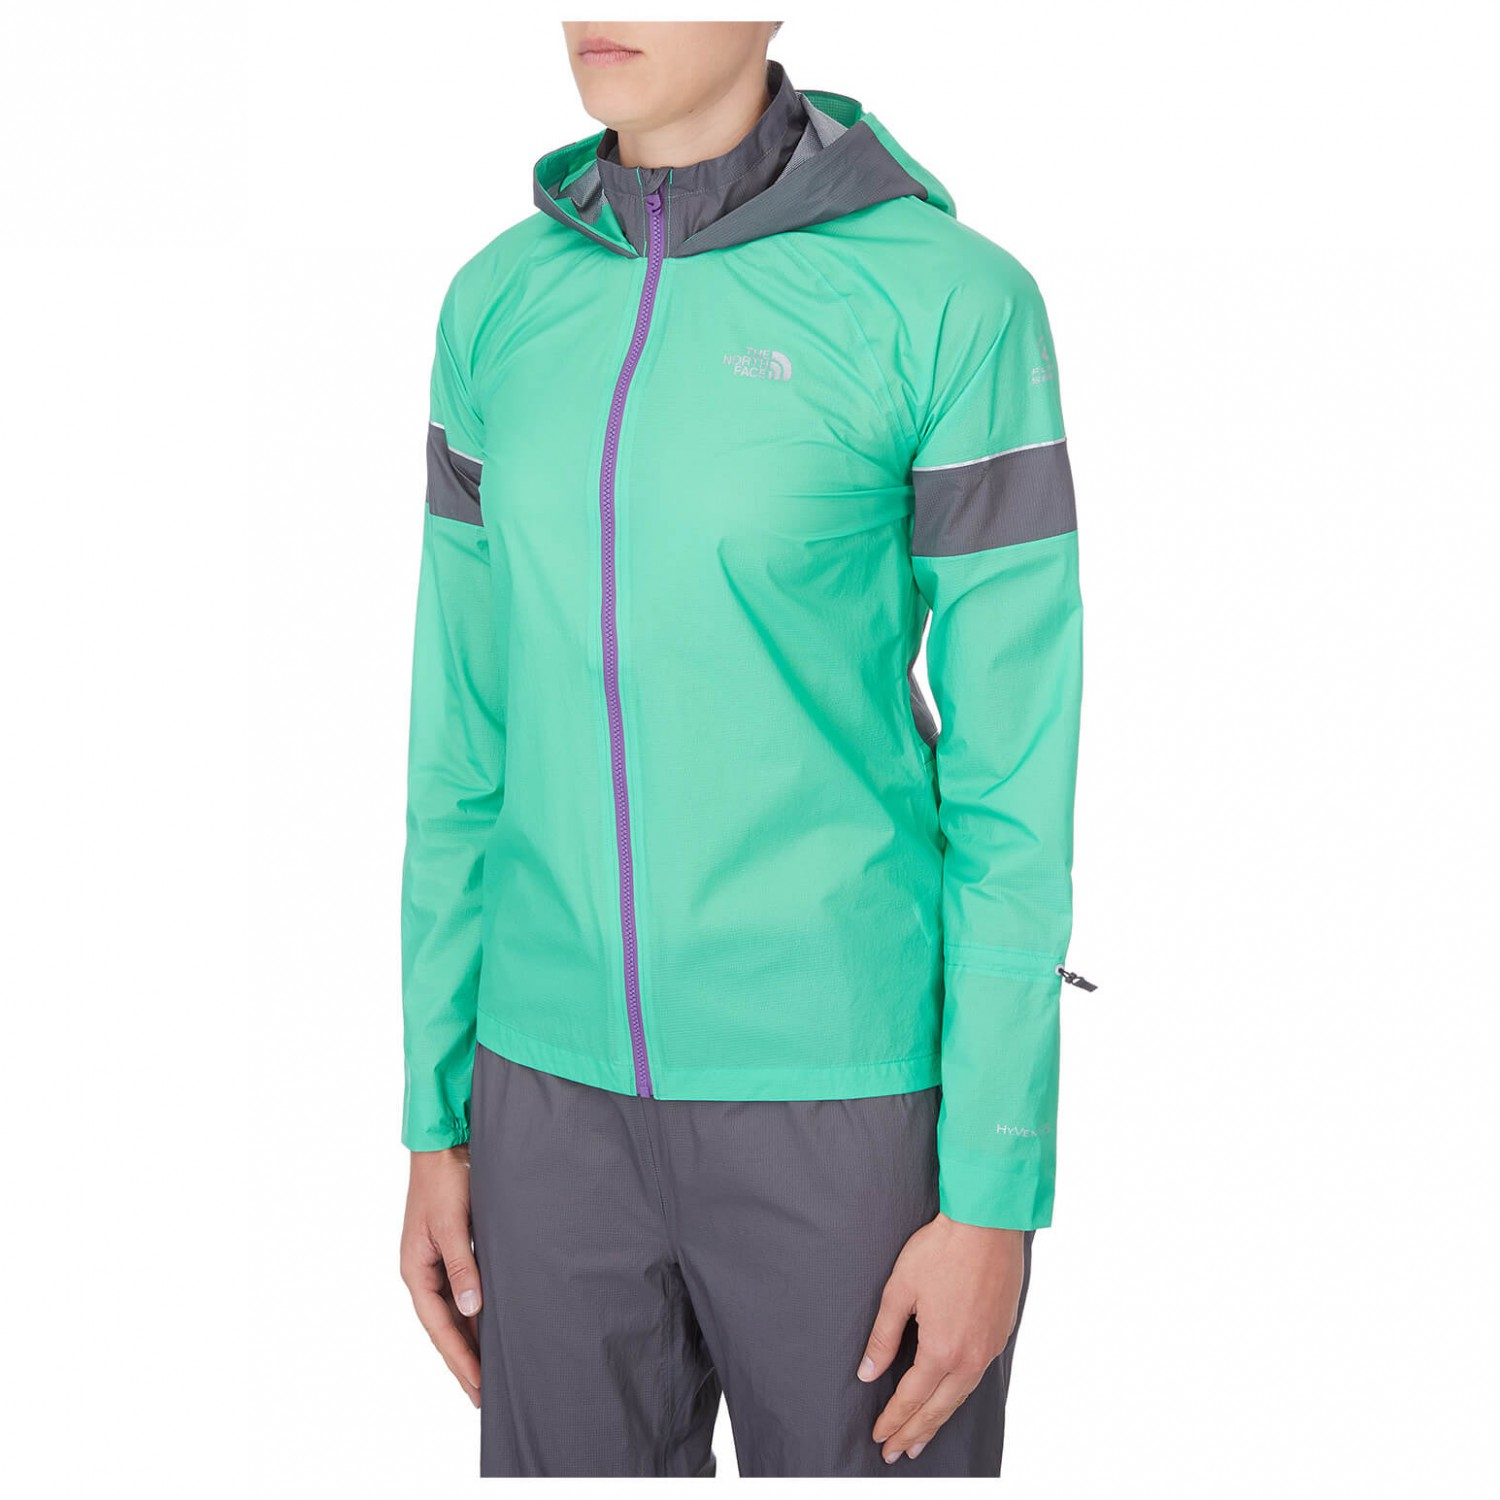 c270abfc466c ... The North Face - Women s Storm Stow Jacket - Running jacket ...